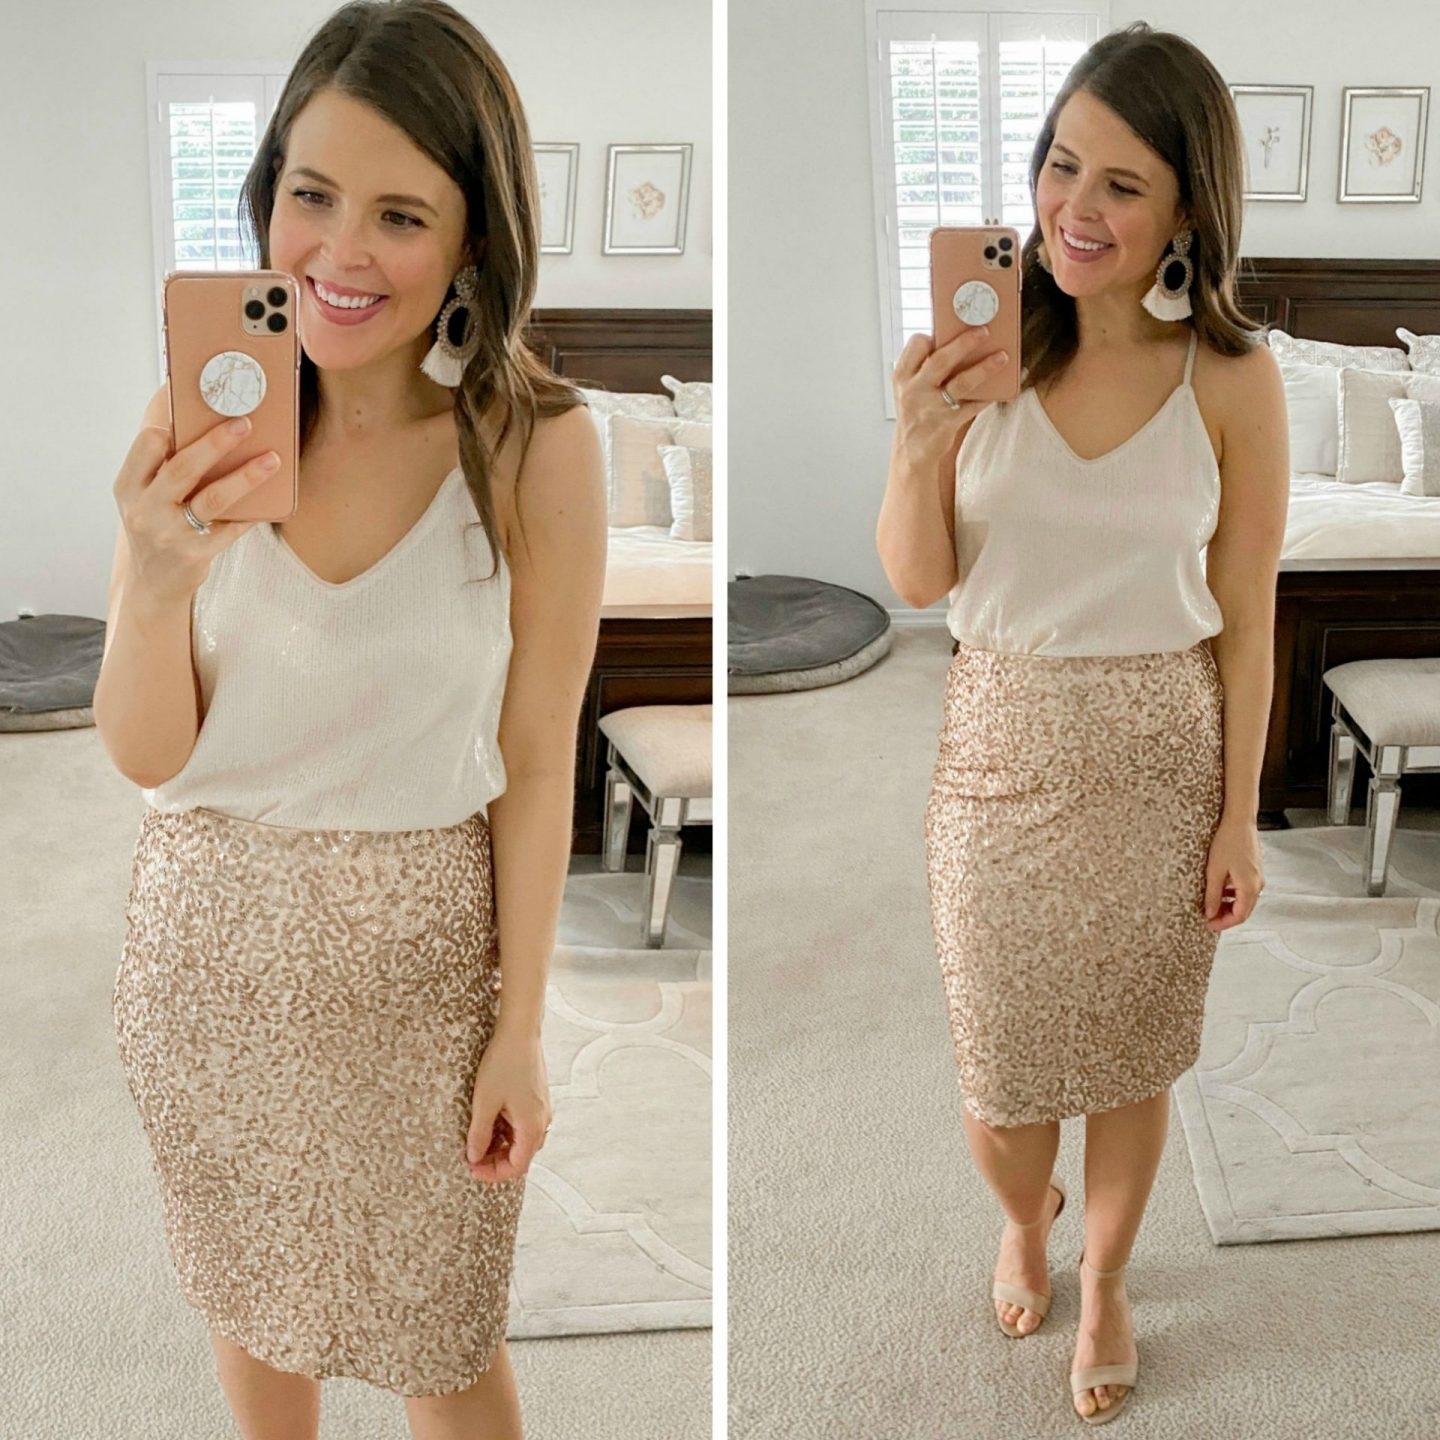 amazon holiday party looks christmas outfits 2019 brie bemis rearick sequin skirt sequin camisole